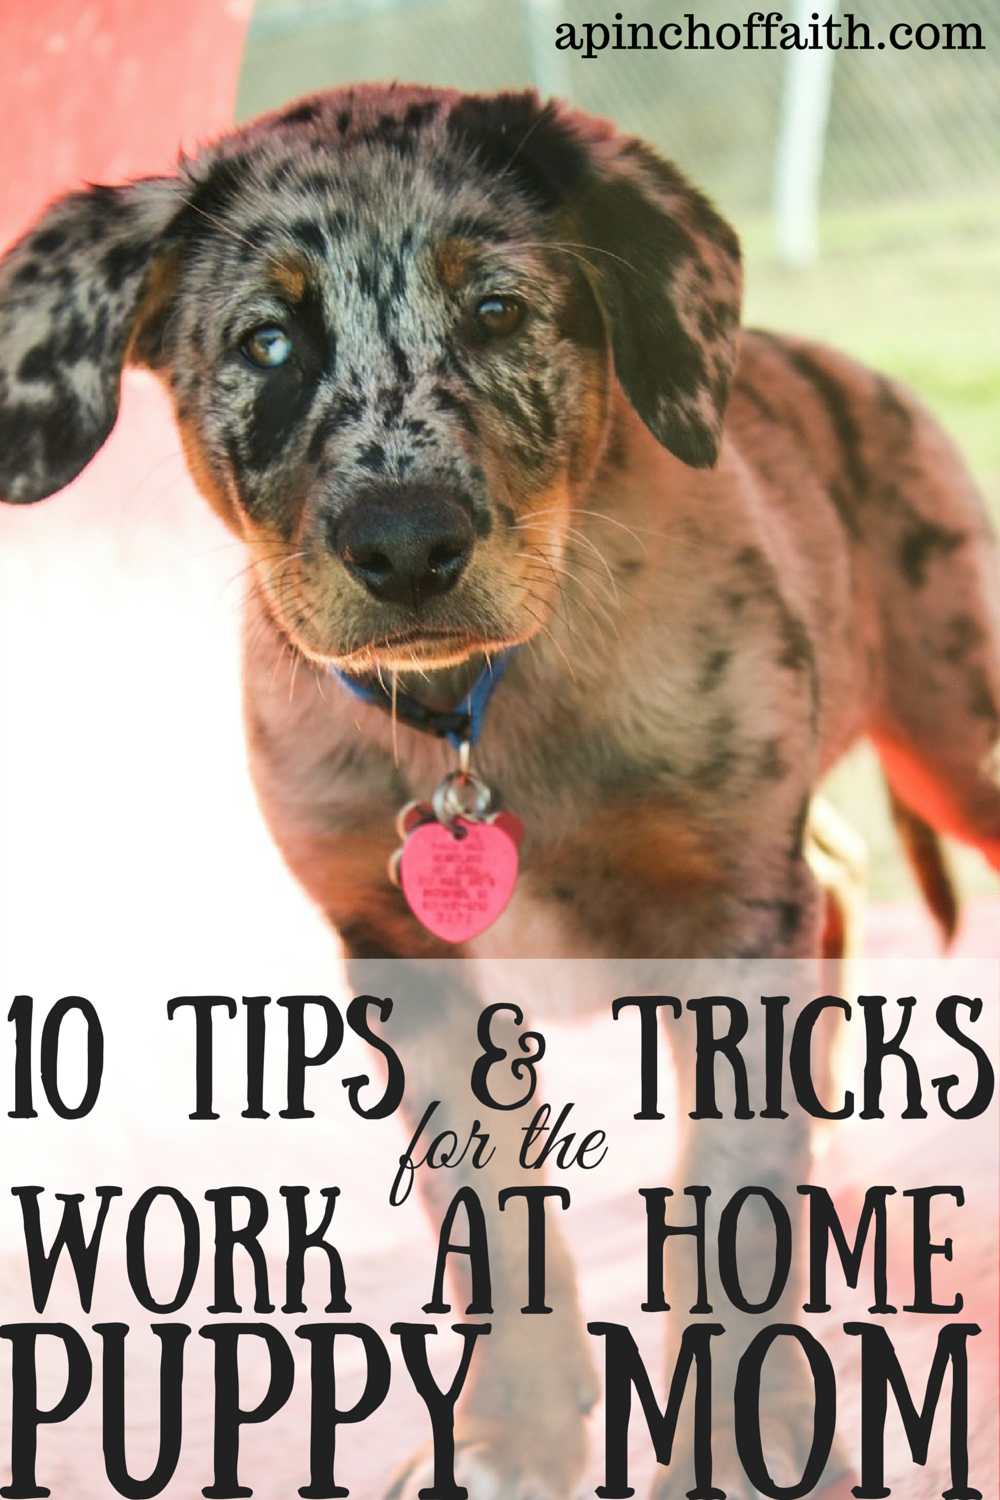 10 Tips and Tricks for the WorkAtHome Puppy Mom